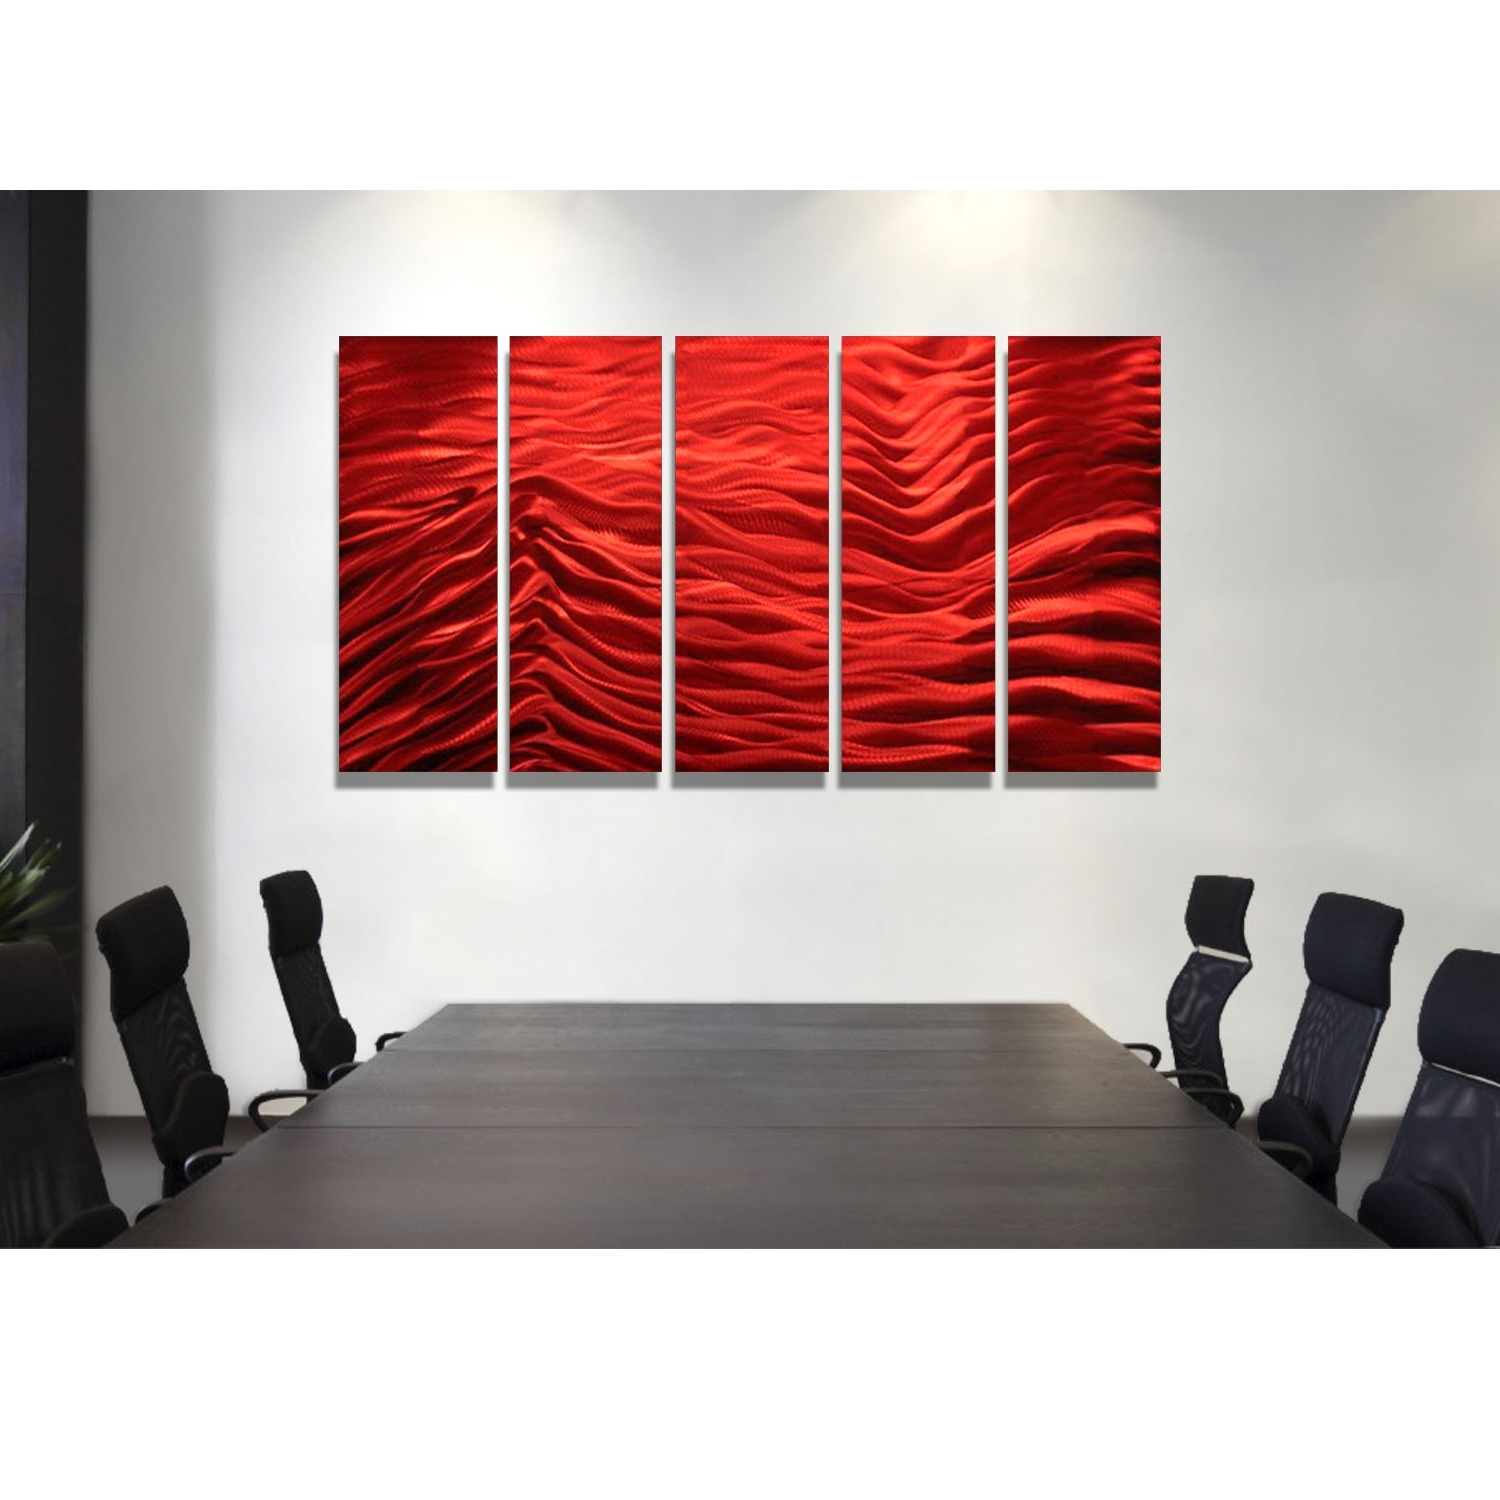 Most Up To Date 5 Panel Wall Art With Red Inertia – Red Metal Wall Art – 5 Panel Wall Décorjon Allen (View 13 of 15)